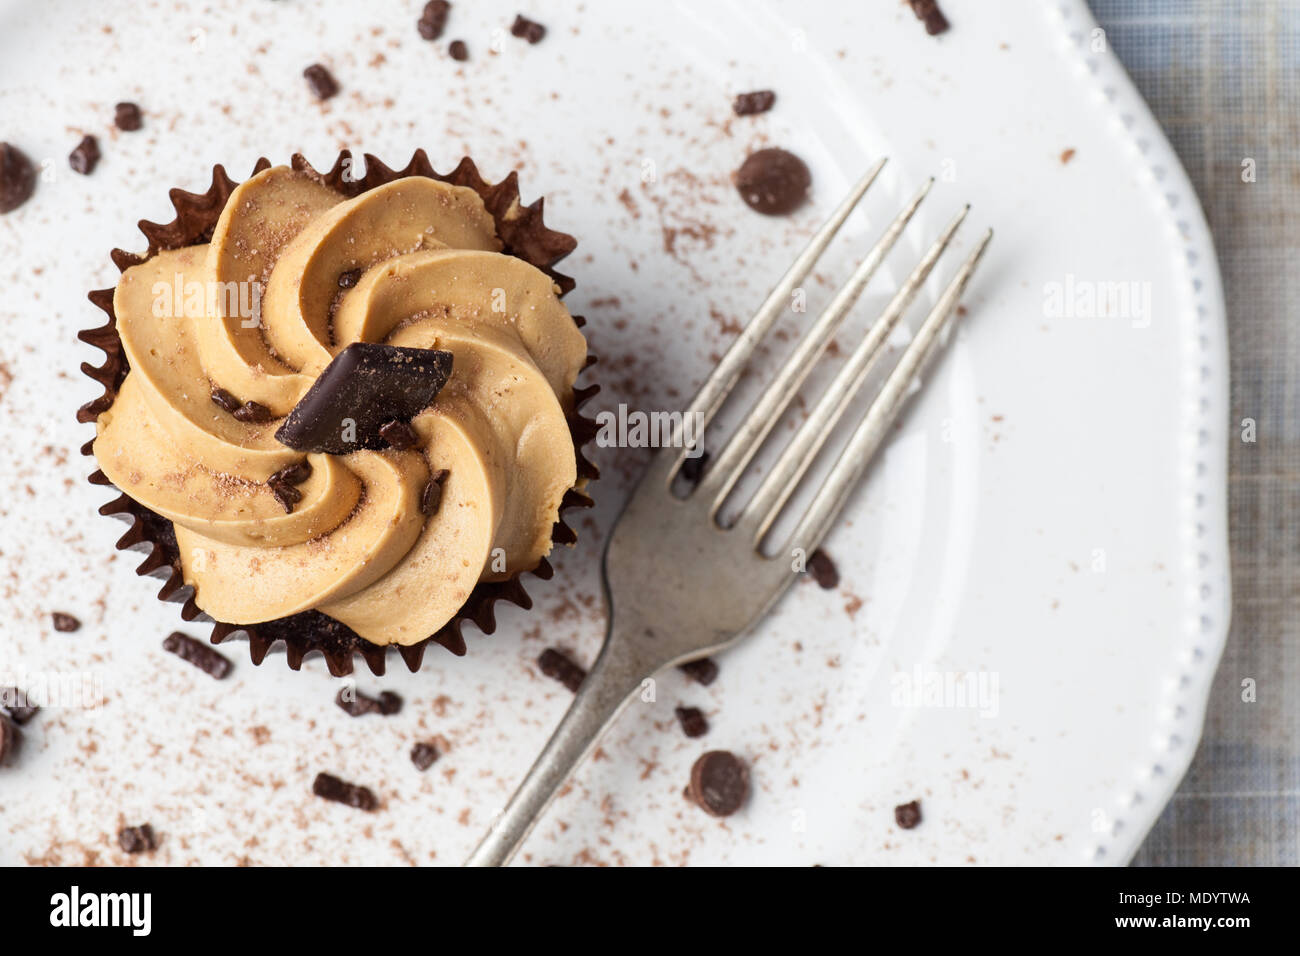 Salted Caramel cupcake on white plate with fork, dusted with cocoa powder and chocolate sprinkles, Overhead View - Stock Image